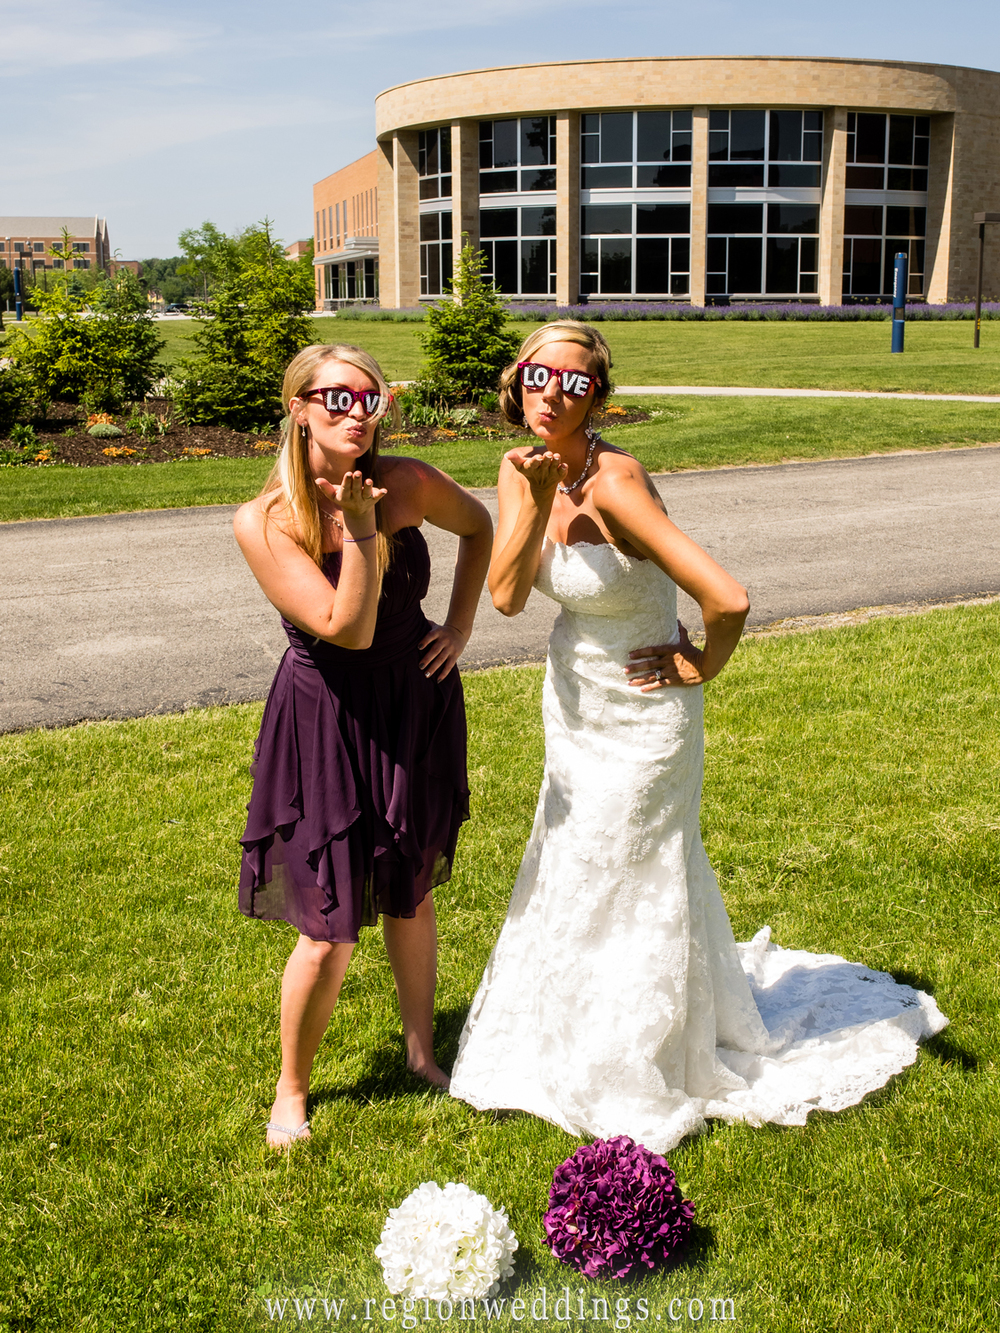 The bride and her bridesmaid blow kisses to the camera.